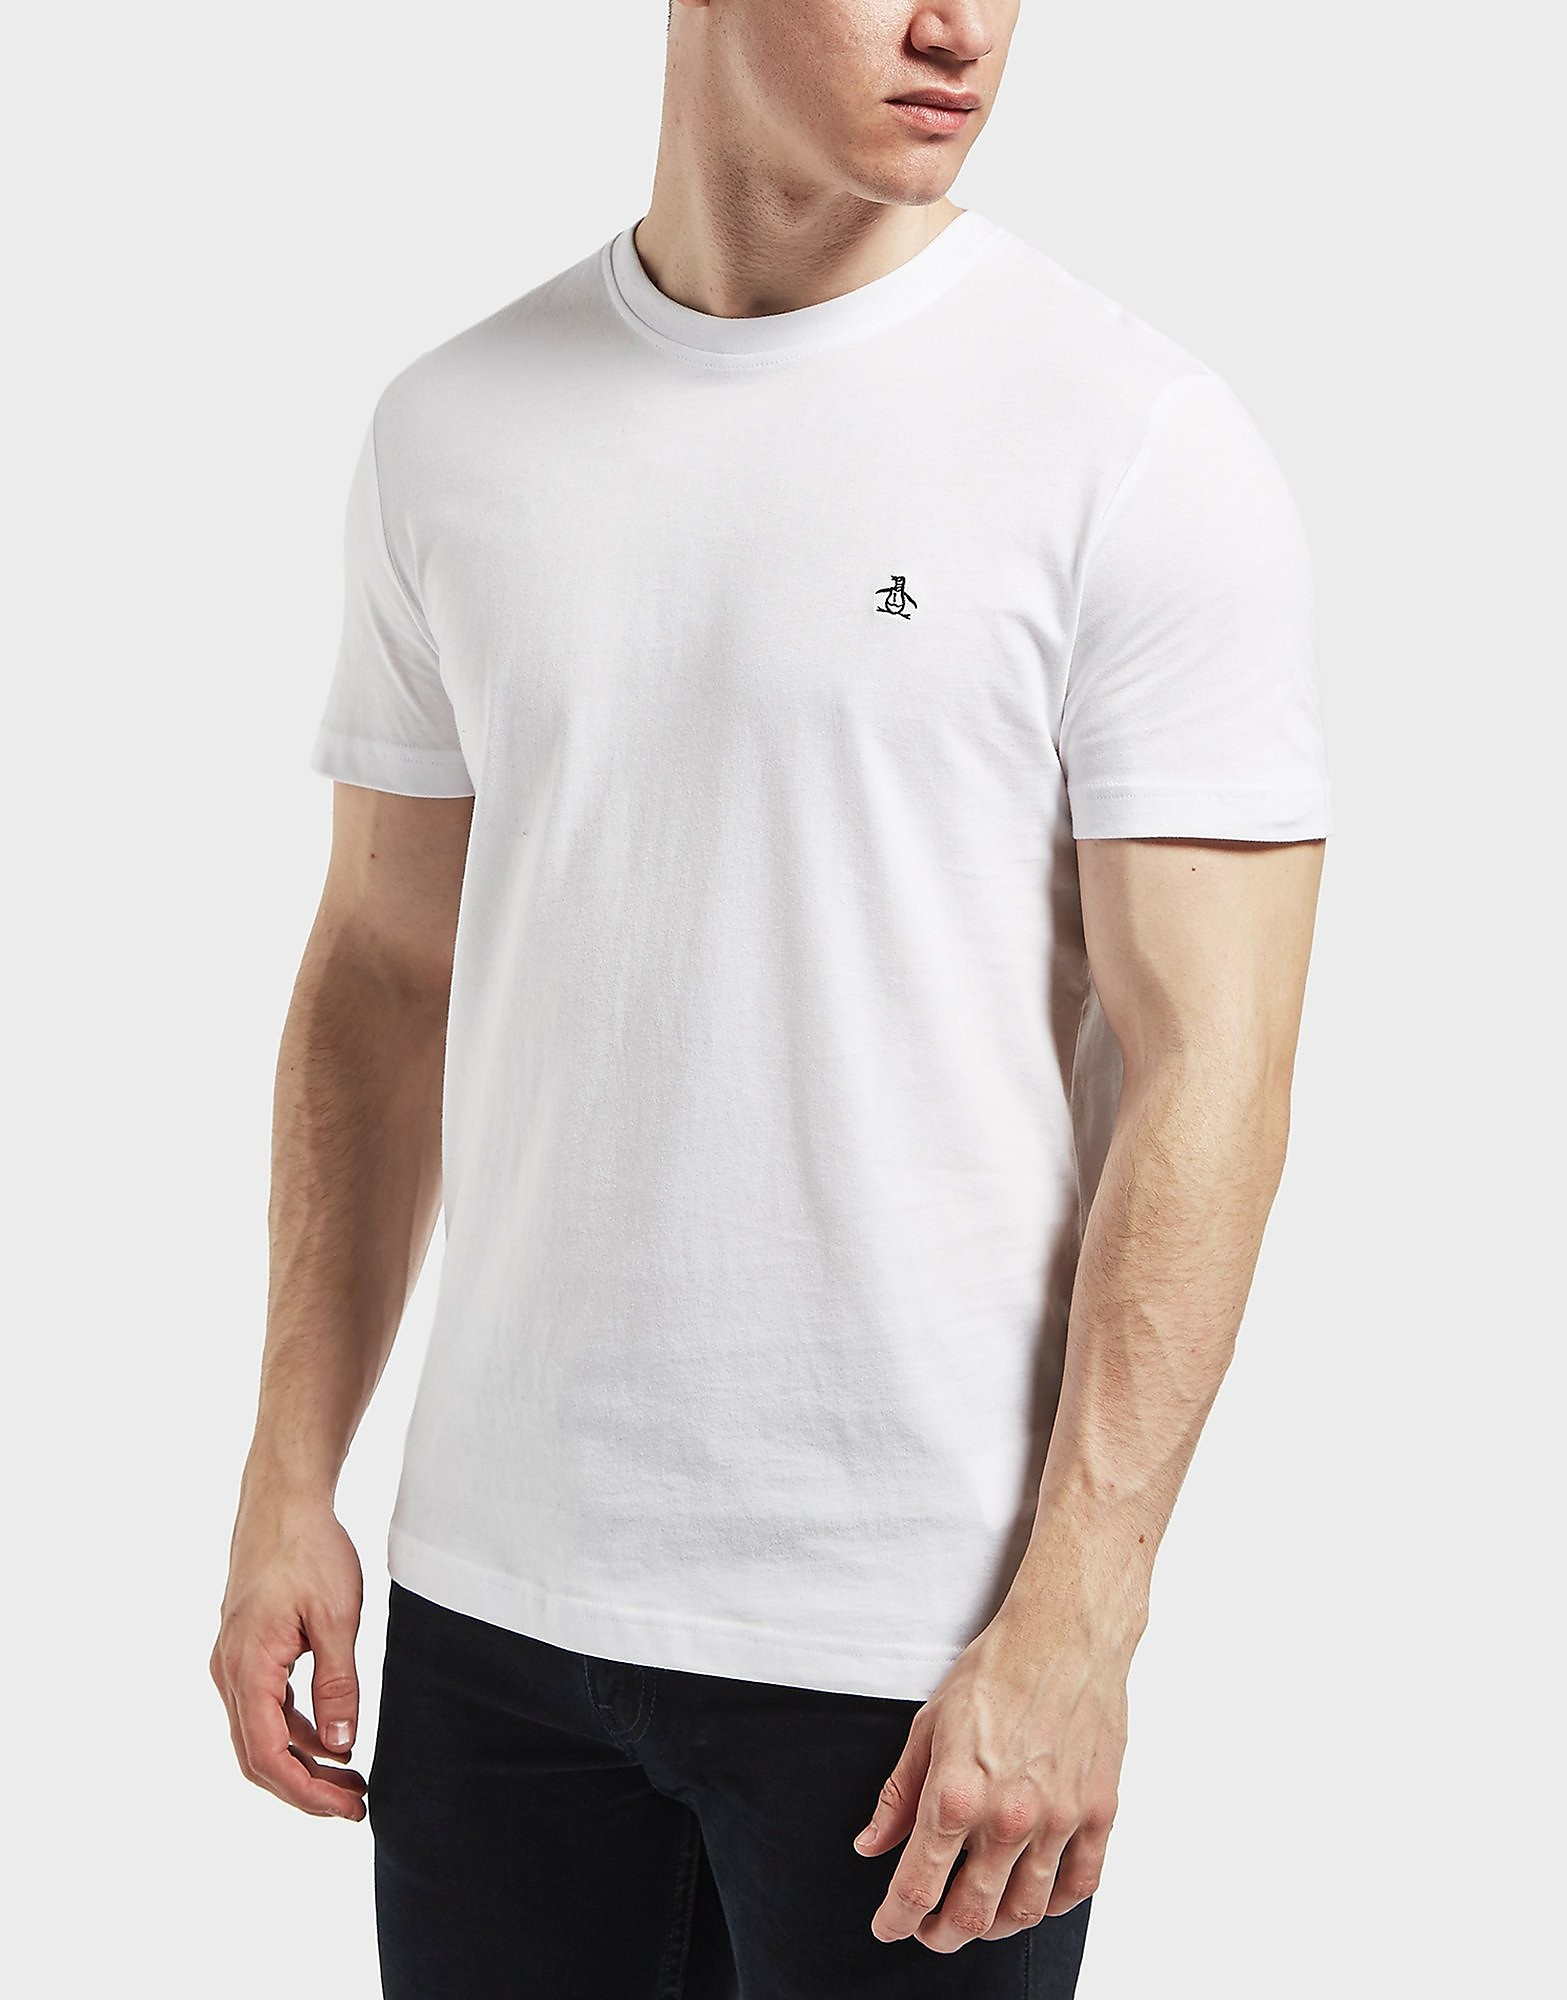 Original Penguin Logo Short Sleeve T-Shirt - Exclusive